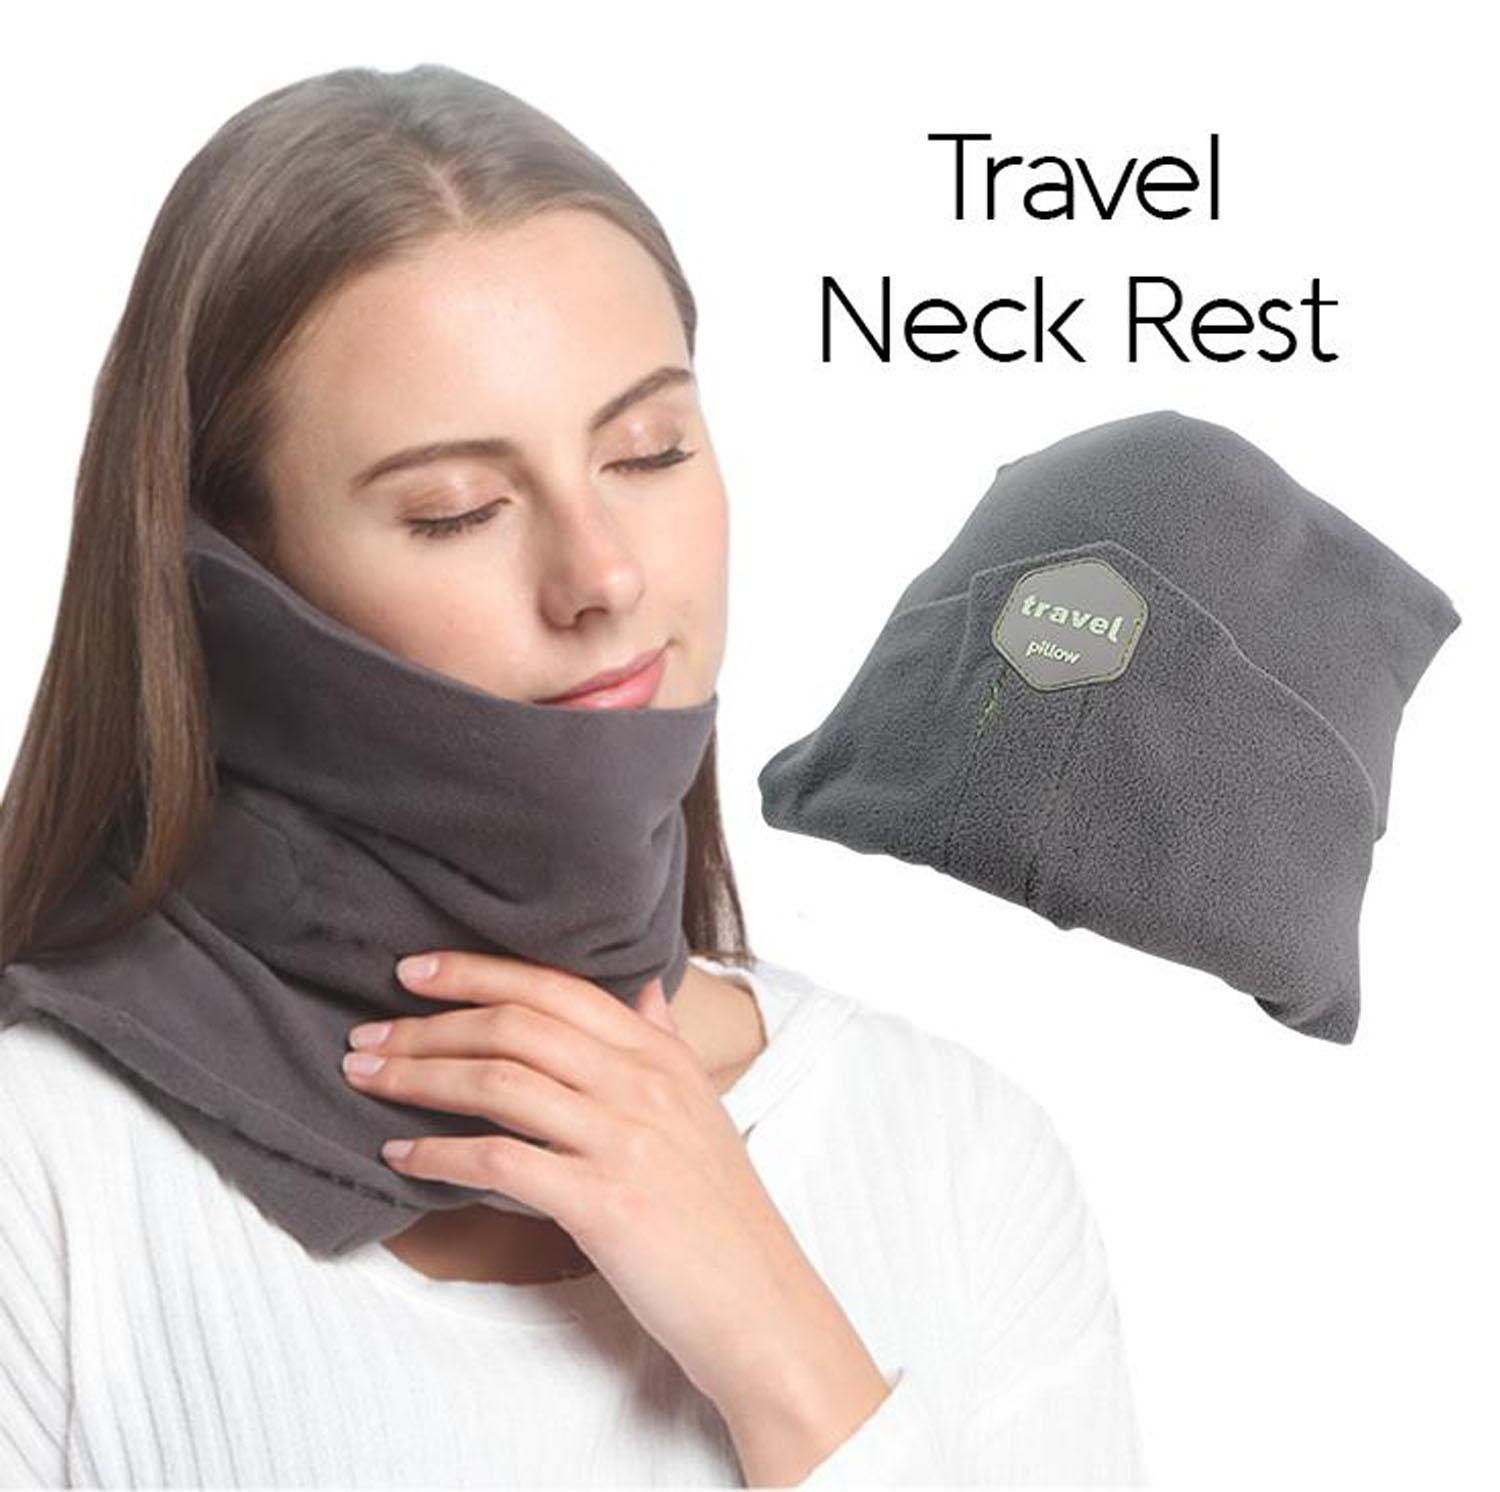 Travel Pillows For Sale Travel Neck Pillow Online Brands Prices